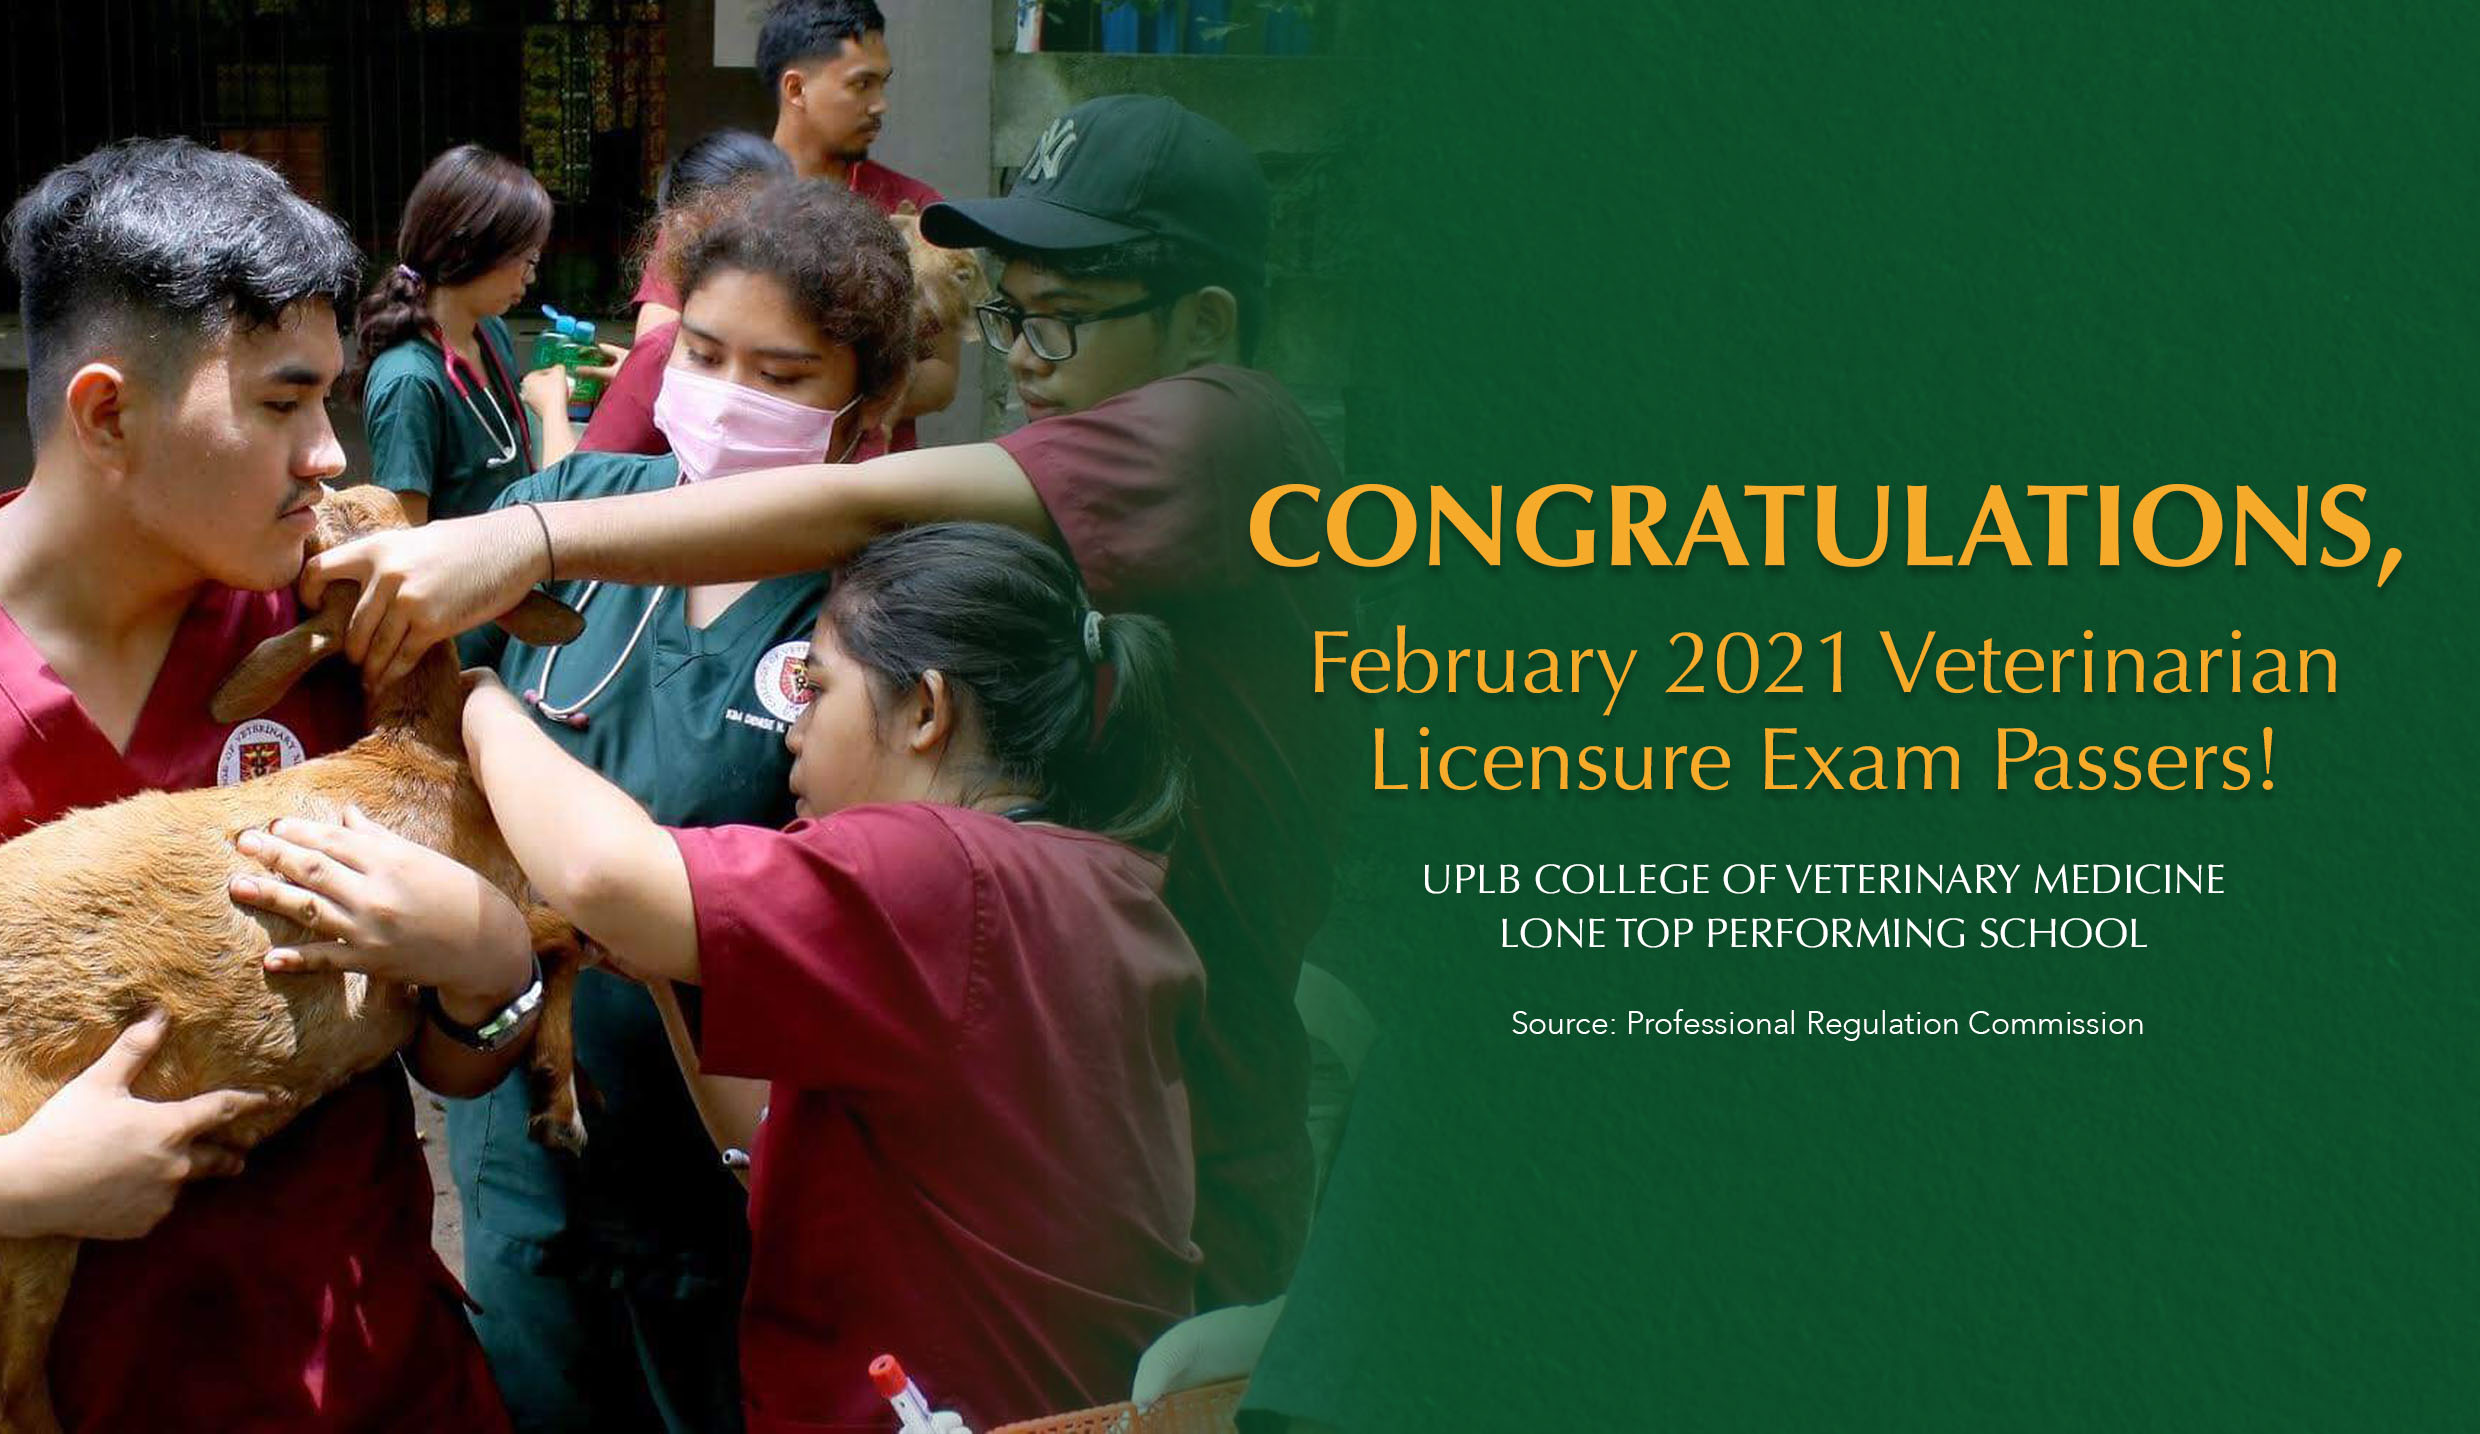 UPLB aces veterinary medicine exam